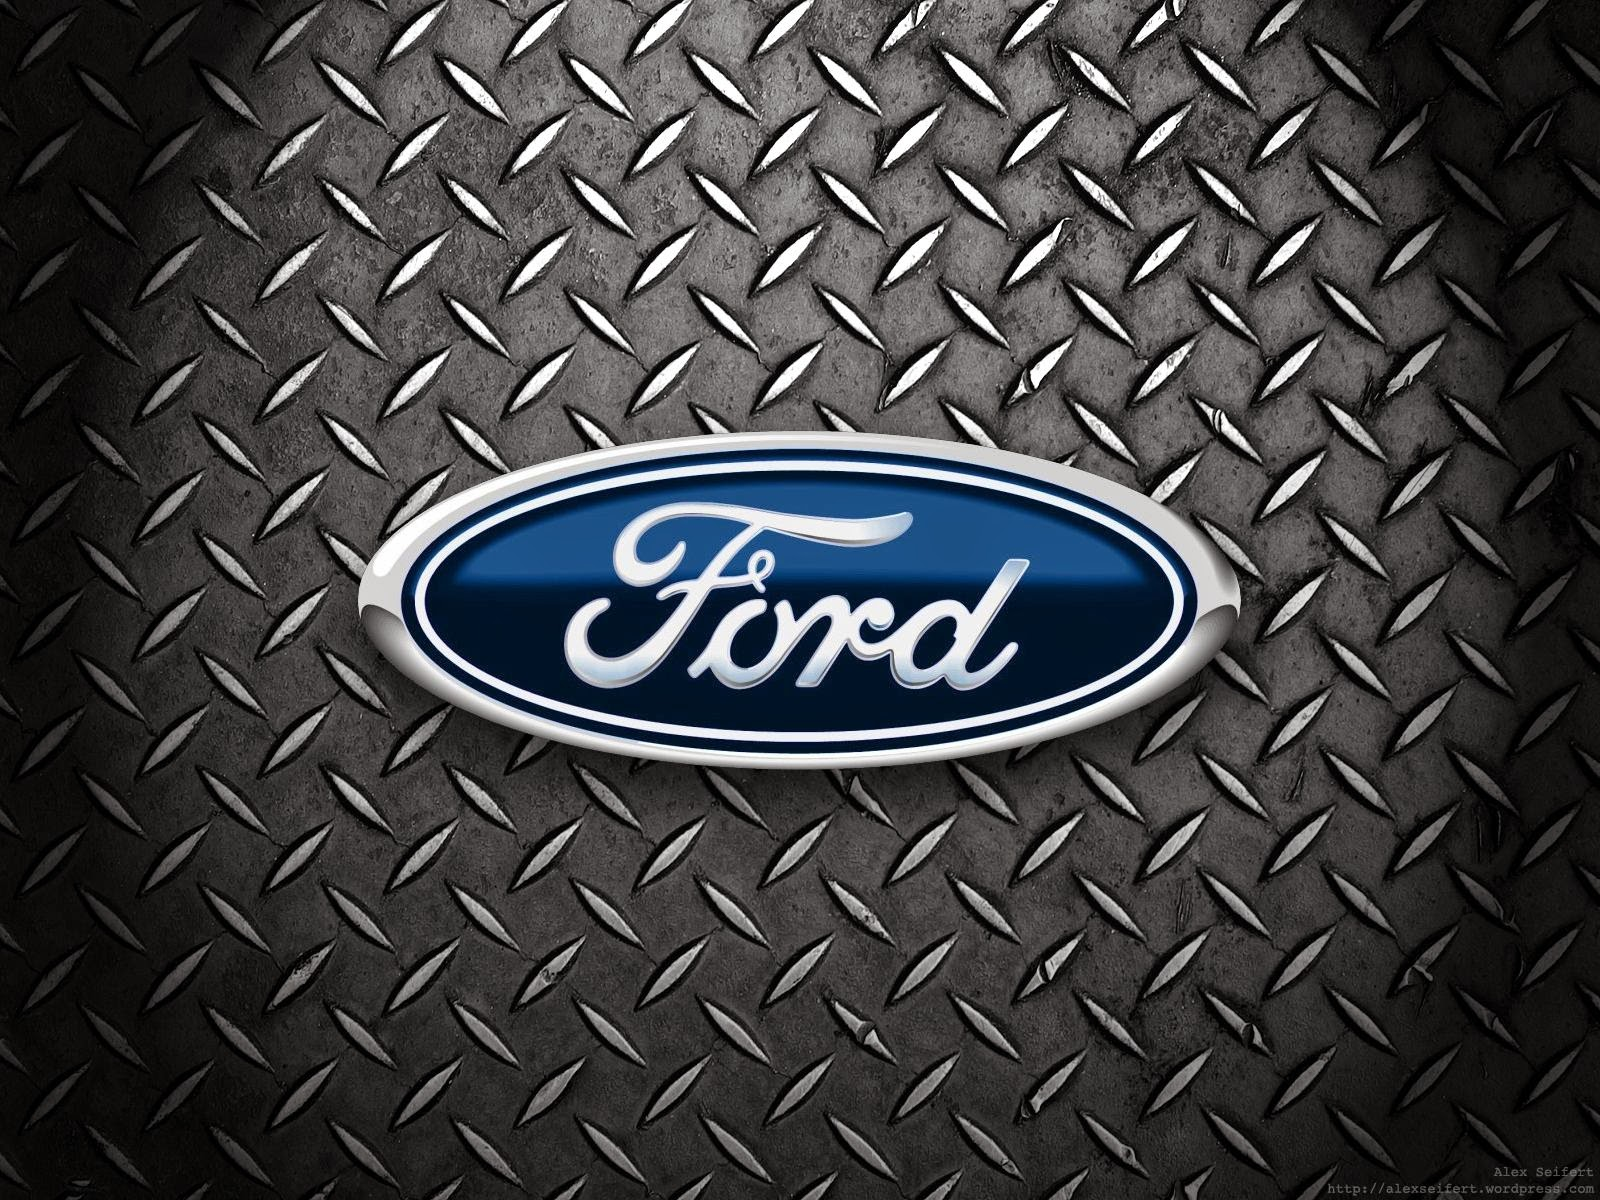 The Stories Behind Car Logos